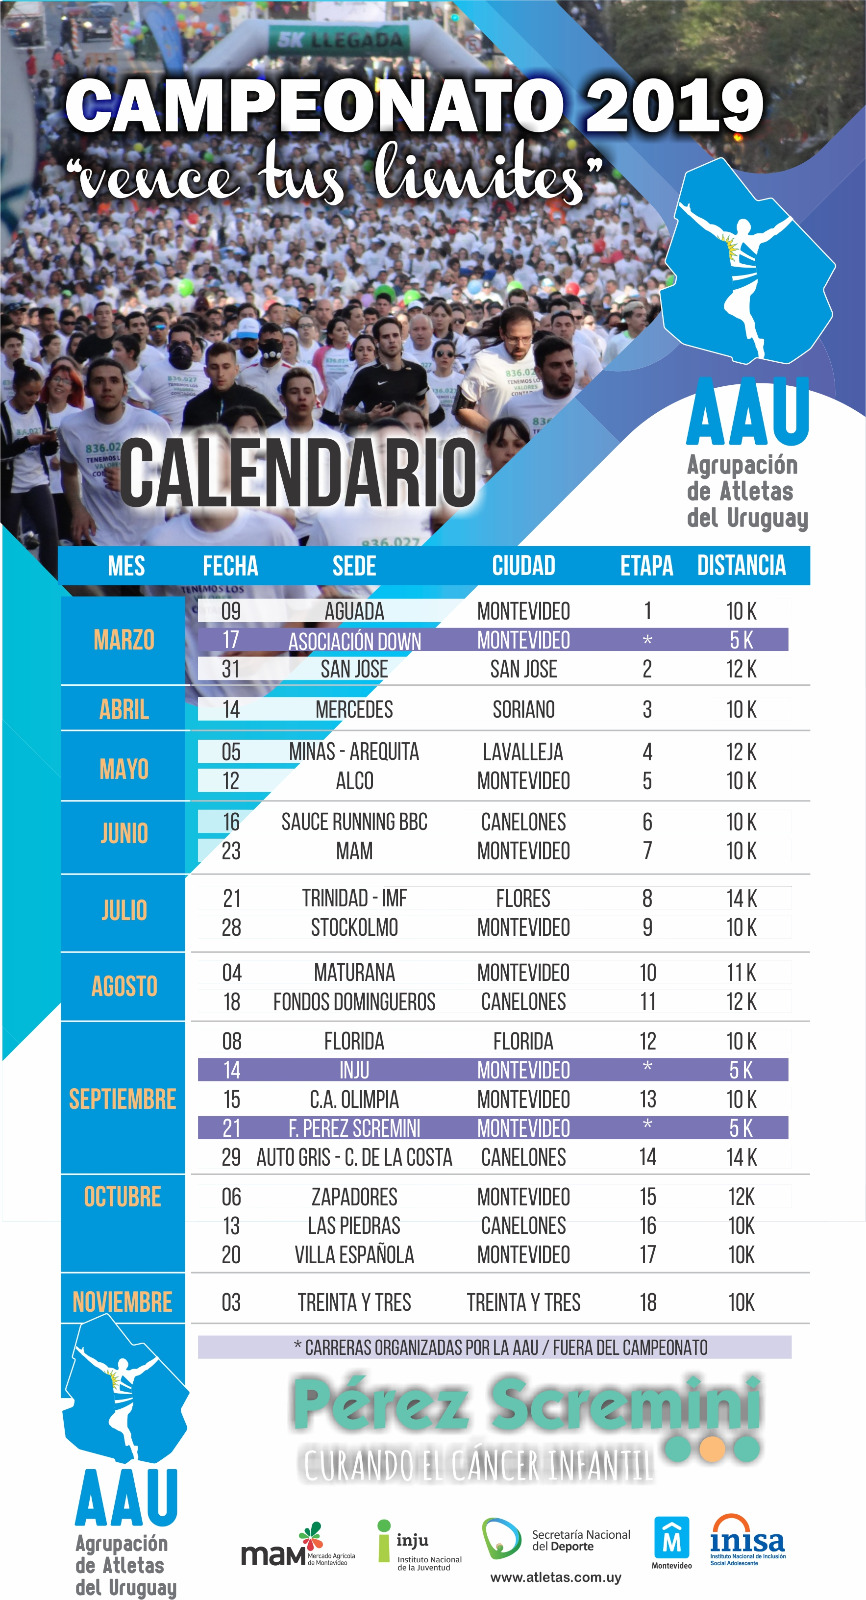 Carreras De Obstaculos Calendario.Run Uruguay Entrega De Kits Calendario Aau 2019